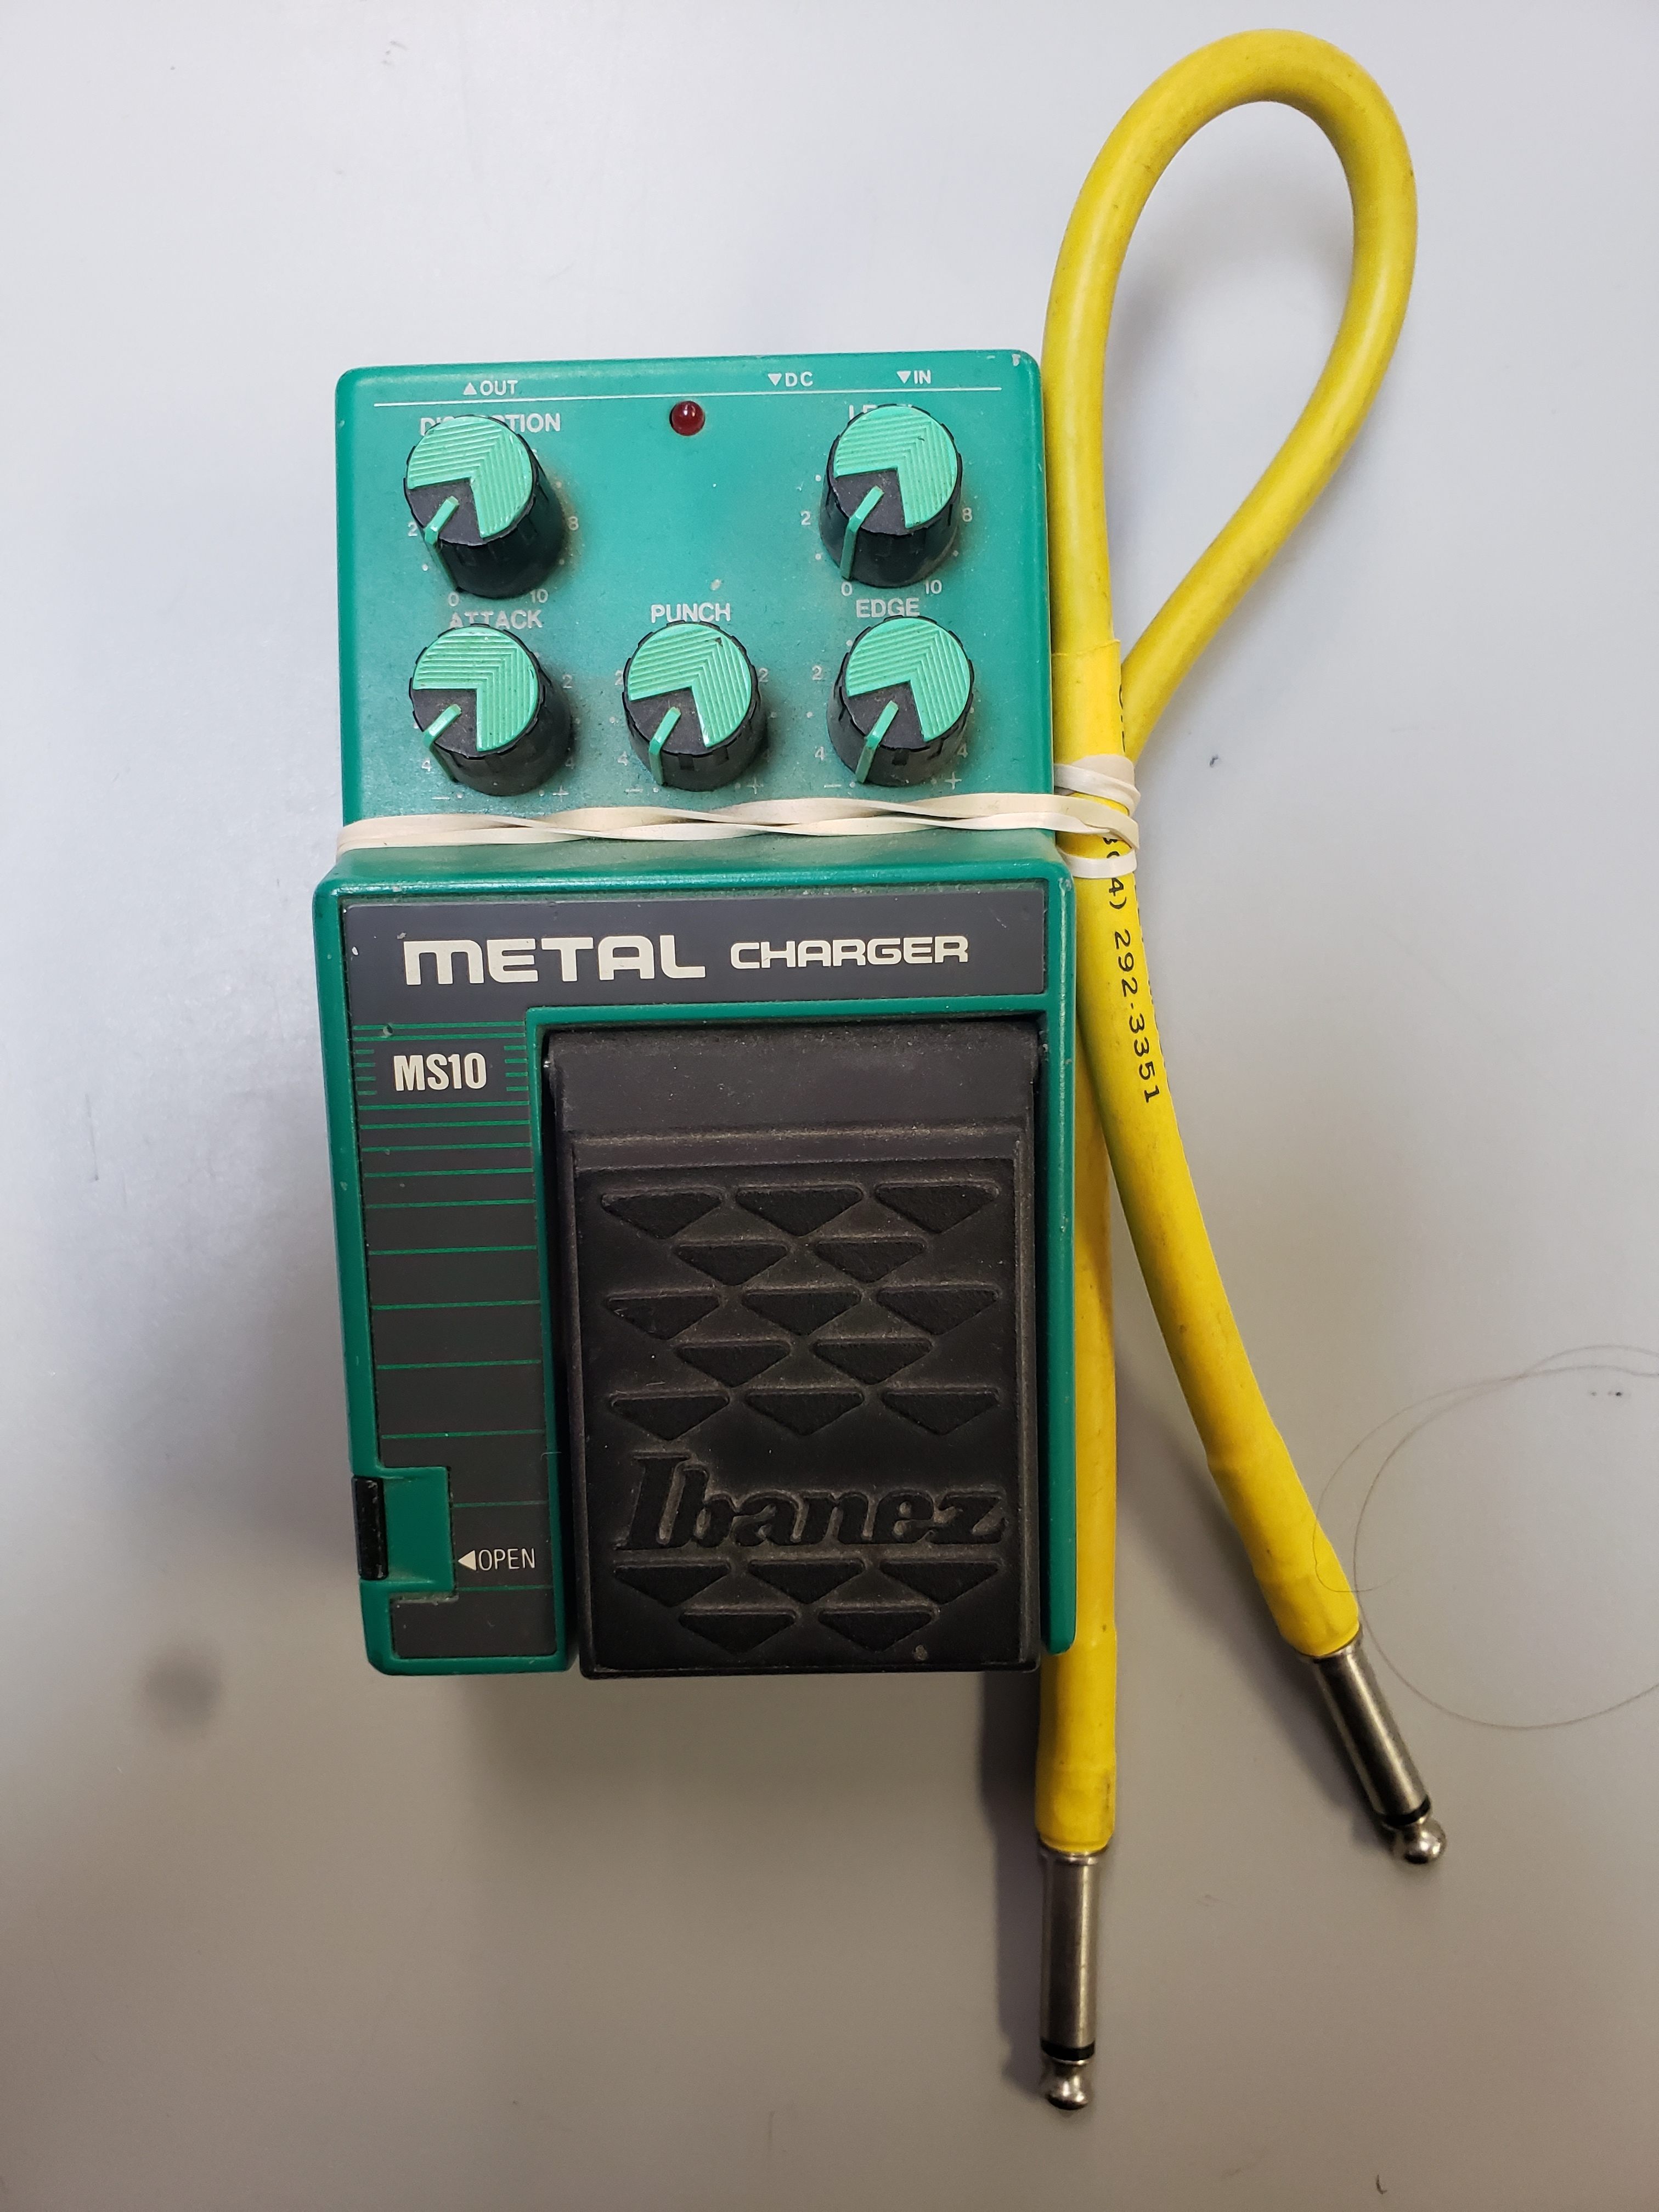 IBANEZ - MS10 - METAL CHARGER EFFECTS PEDAL W/ CORD